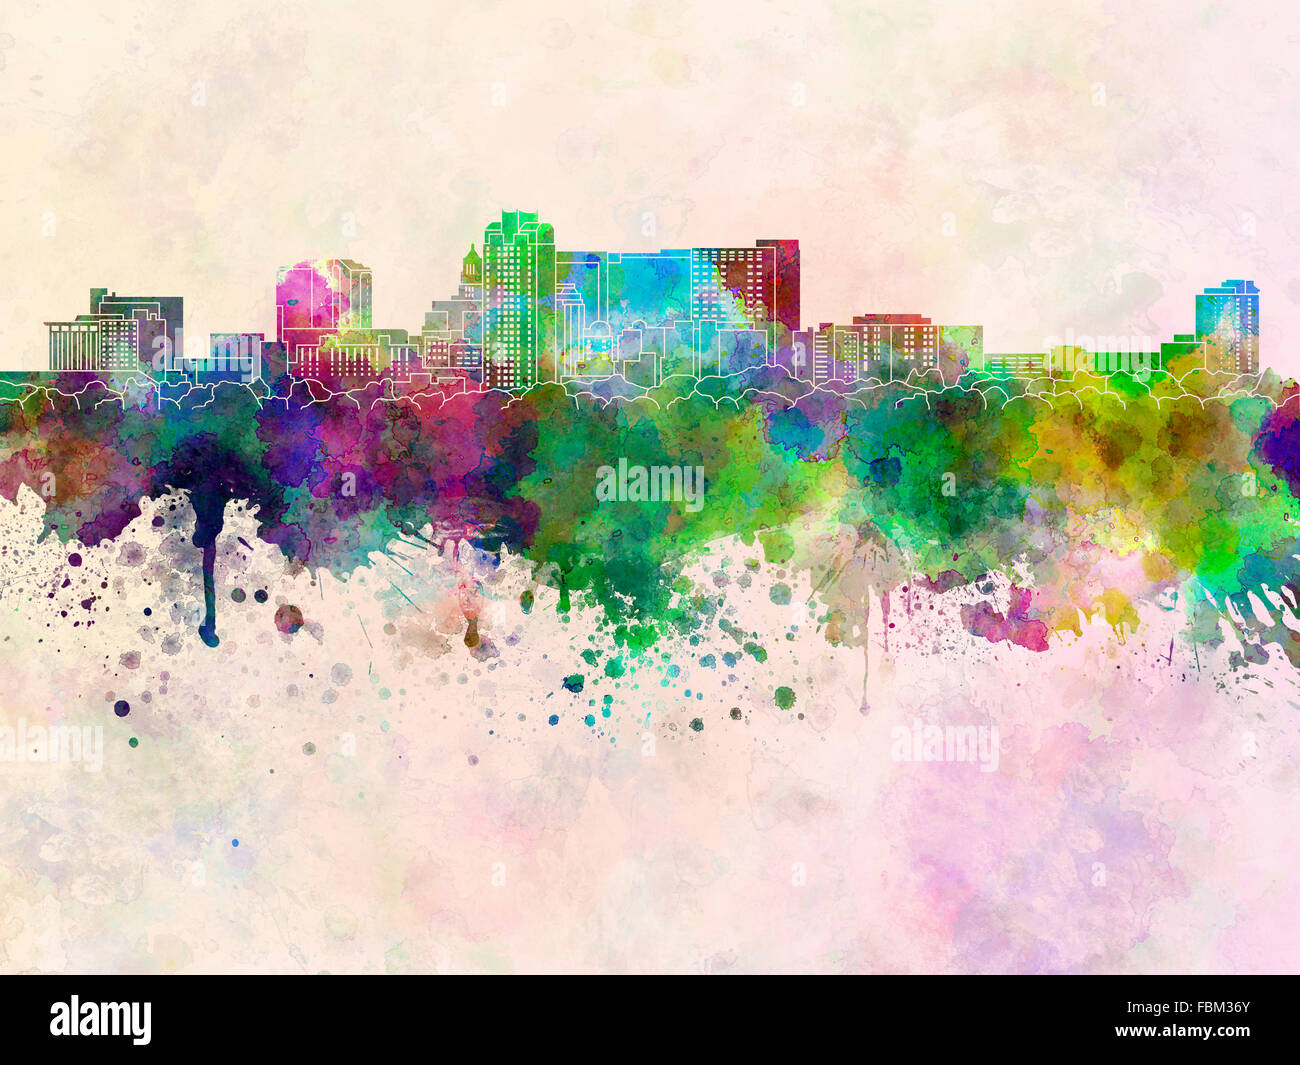 Rochester MN skyline in watercolor background - Stock Image